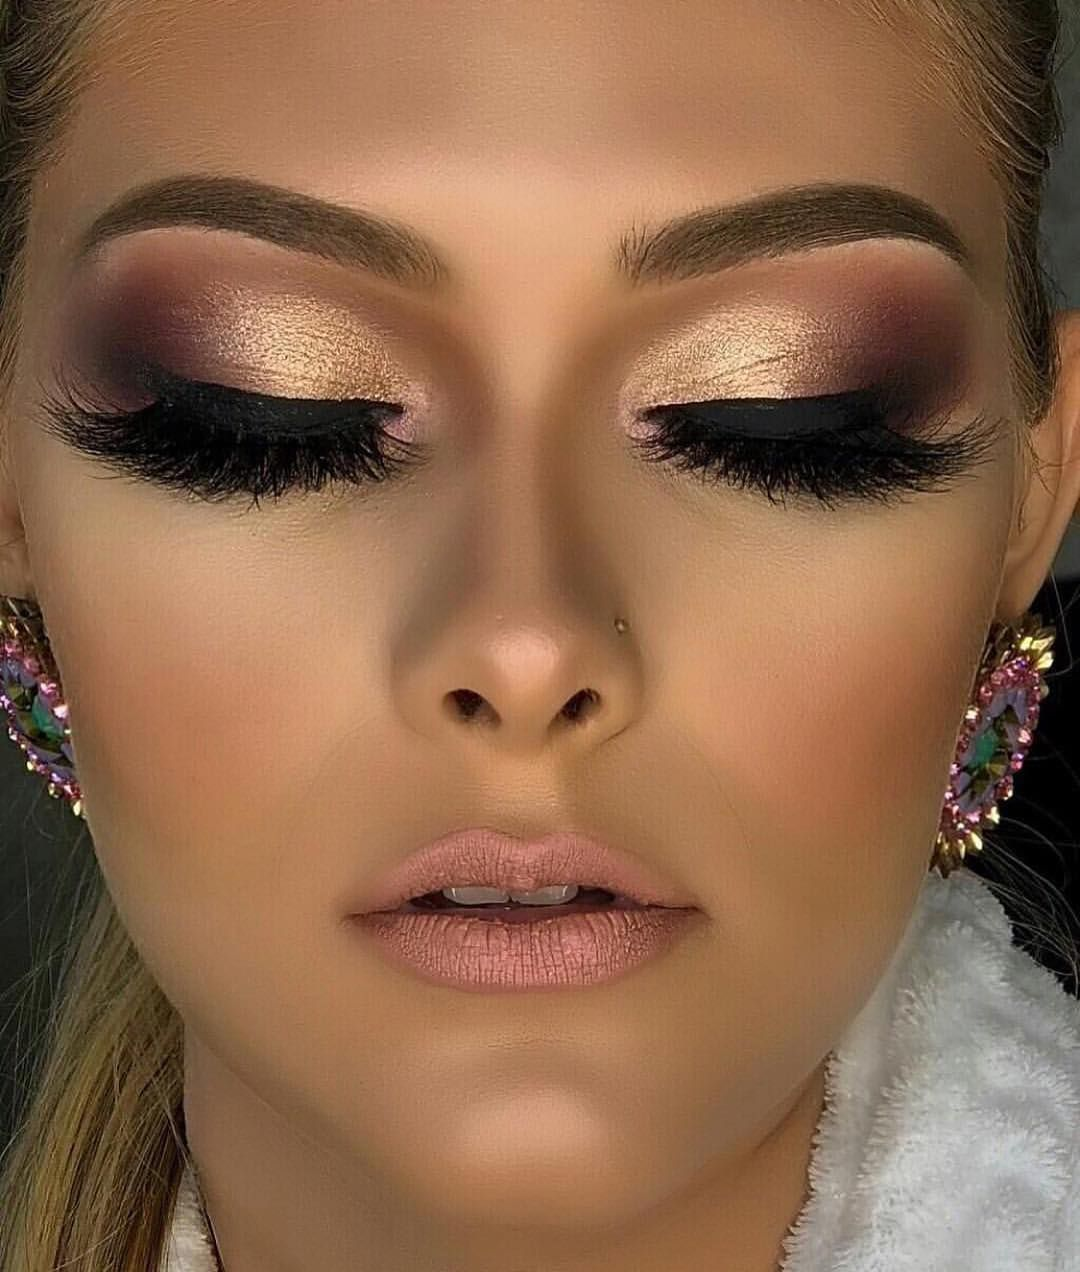 """Photo of N'vei Mi Beauti GLAMOGRAM on Instagram: """"Make Up💄& S L Á Y🔪Repeat🔁  I S S A 💋B E A U T Í💋 G L A M Beautí Feature Glam Beauty Shot • ••••• 🌹Please Follow @nveimibeauti for more…"""""""